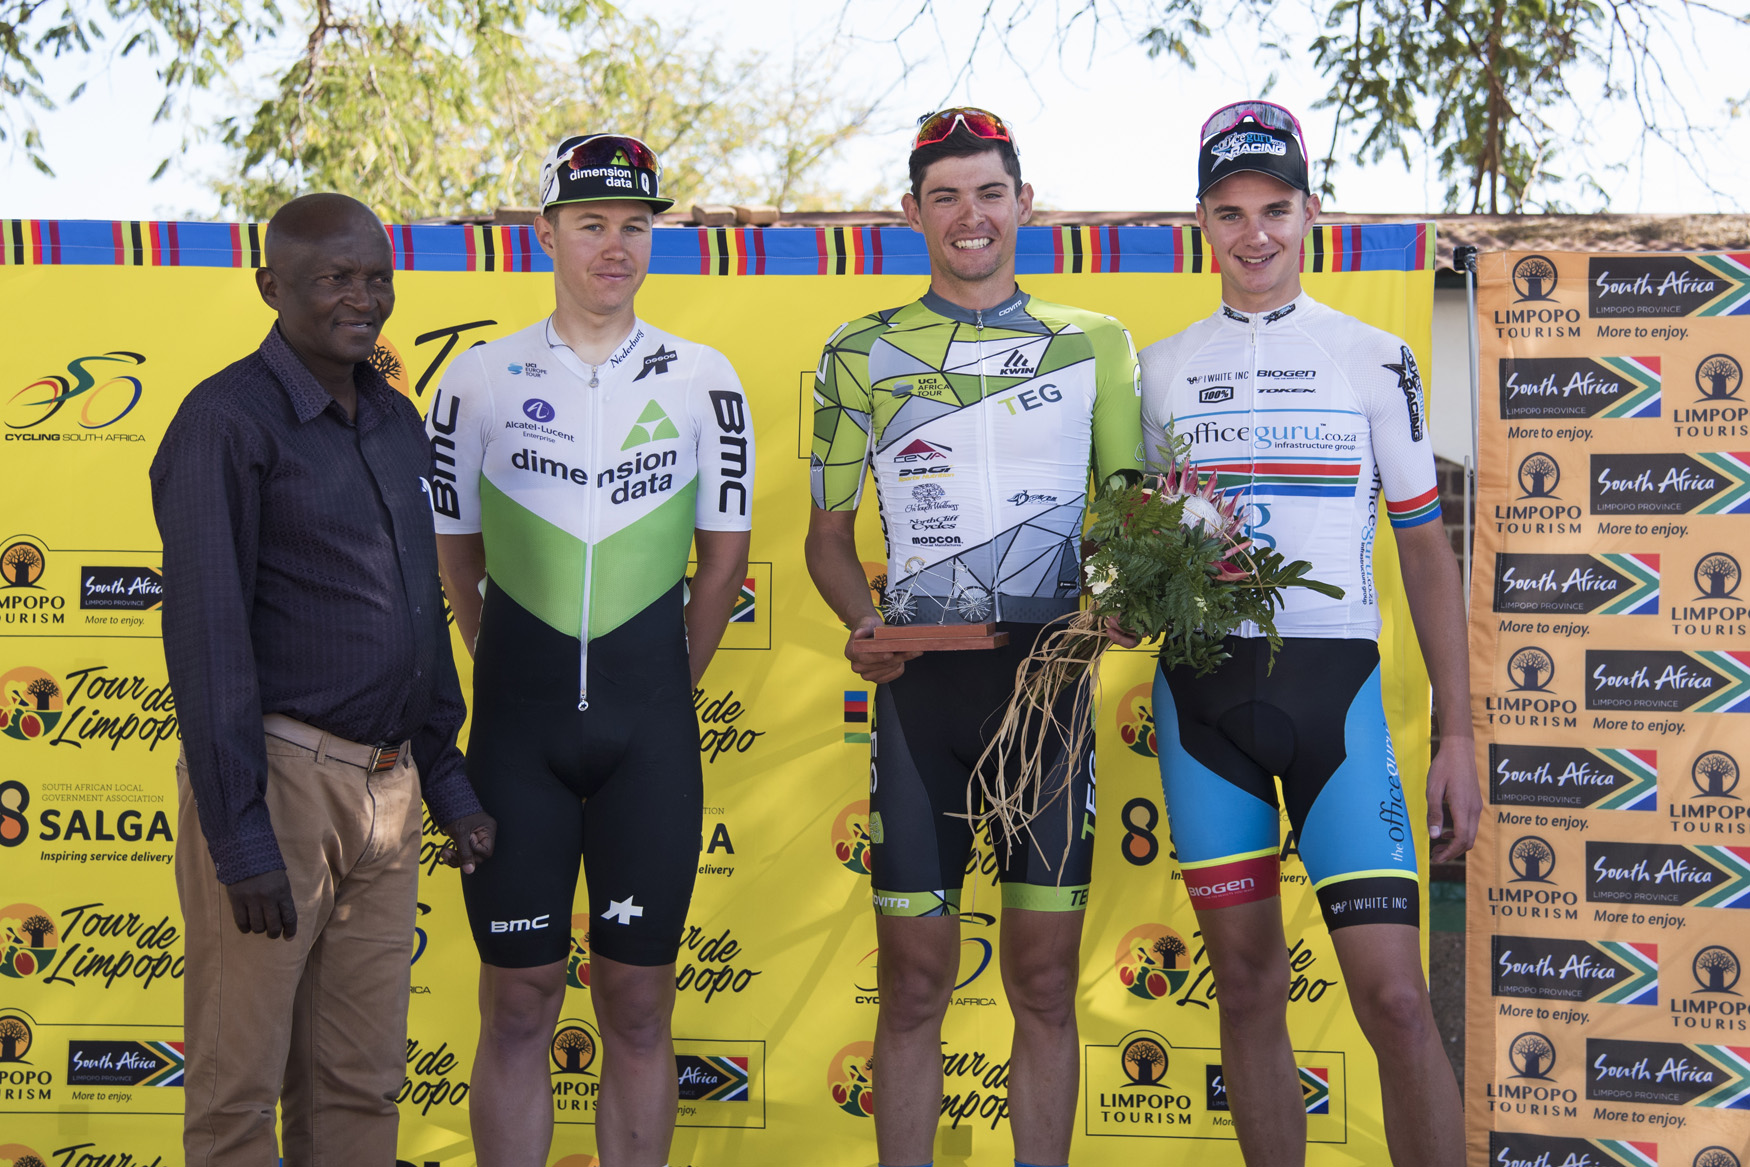 Stage 1 race winner Gustav Basson (TEG Continental - centre) flanked by Alexander Konychev (Team Dimension Data Continental - left) and Marc Pritzen (Officeguru Racing - right) at the 2019 Tour de Limpopo (UCI 2.2) from 14-18 May © Tour de Limpopo/Andrew Mc Fadden